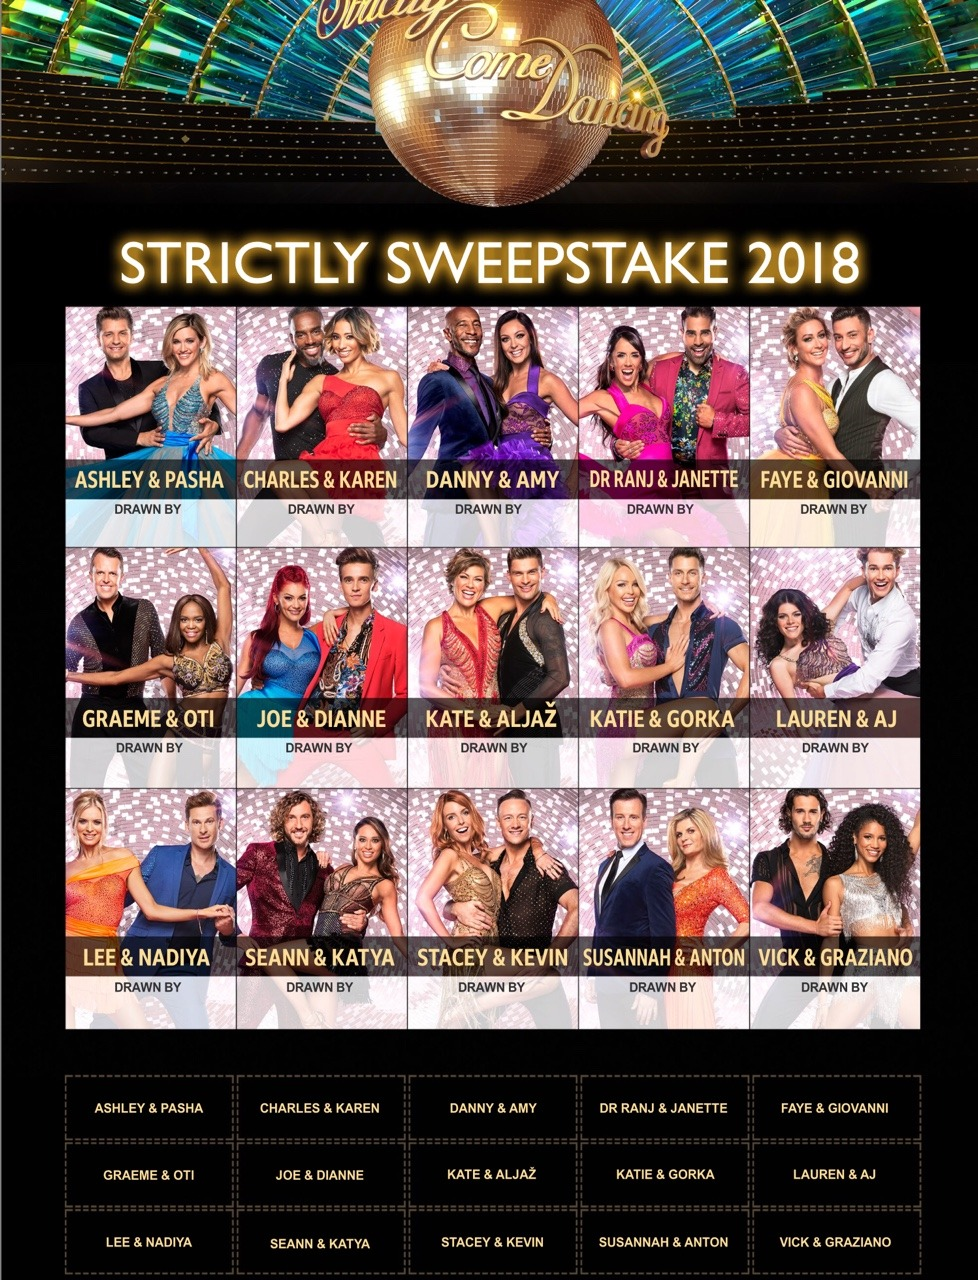 Strictly come dancing sweepstake 2018